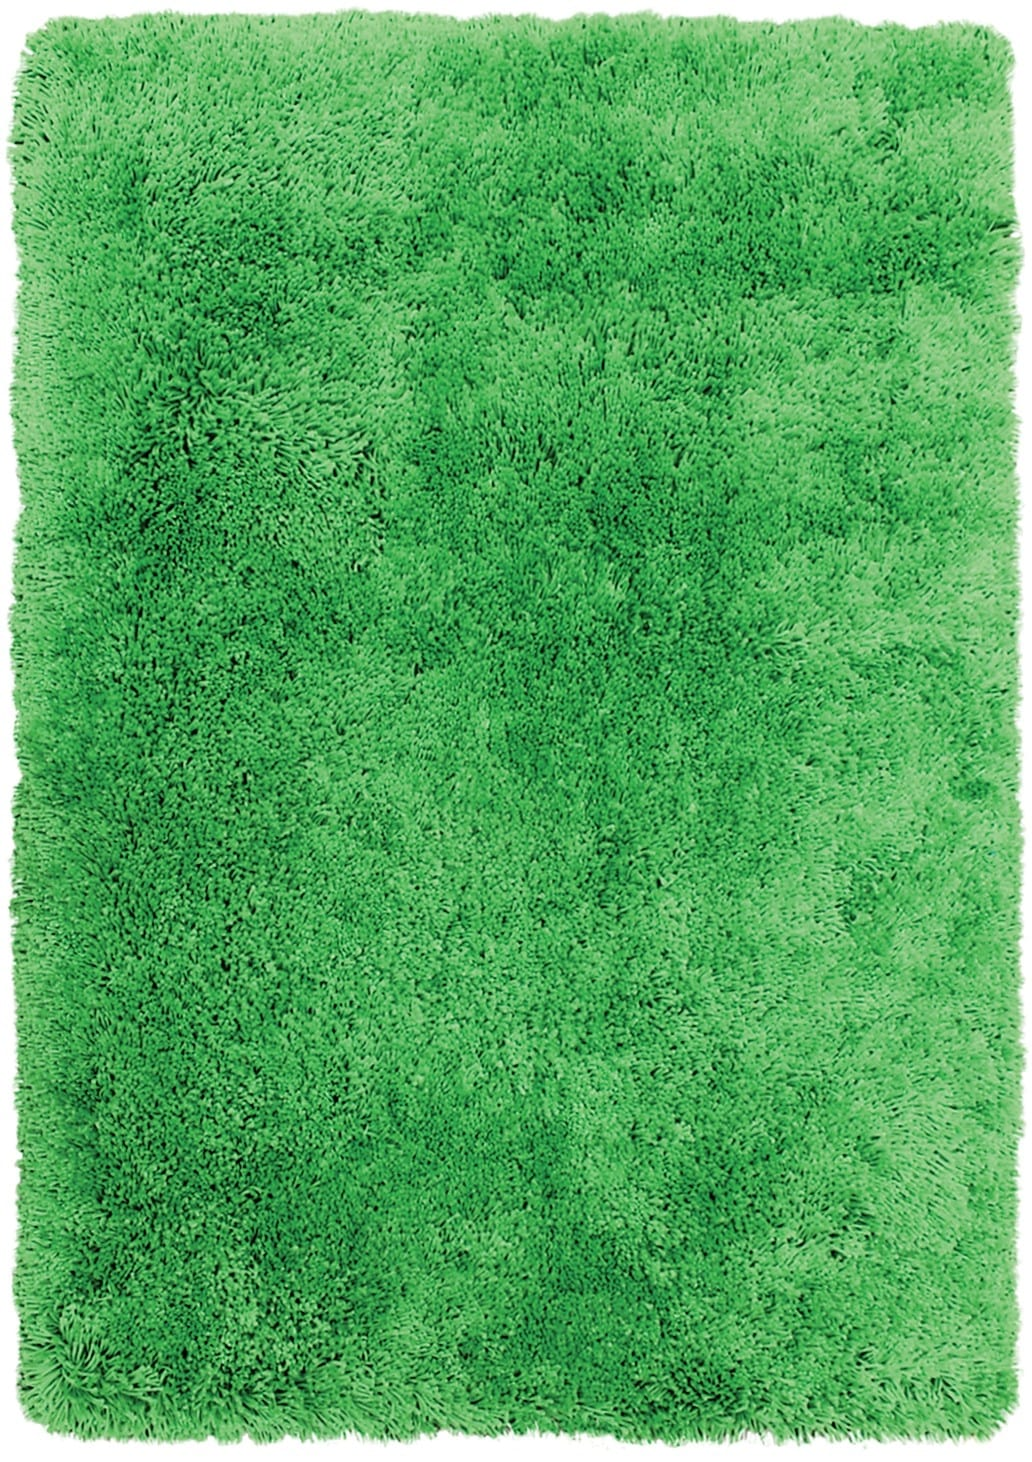 Green Fashion Shag Area Rug – 4' x 5'